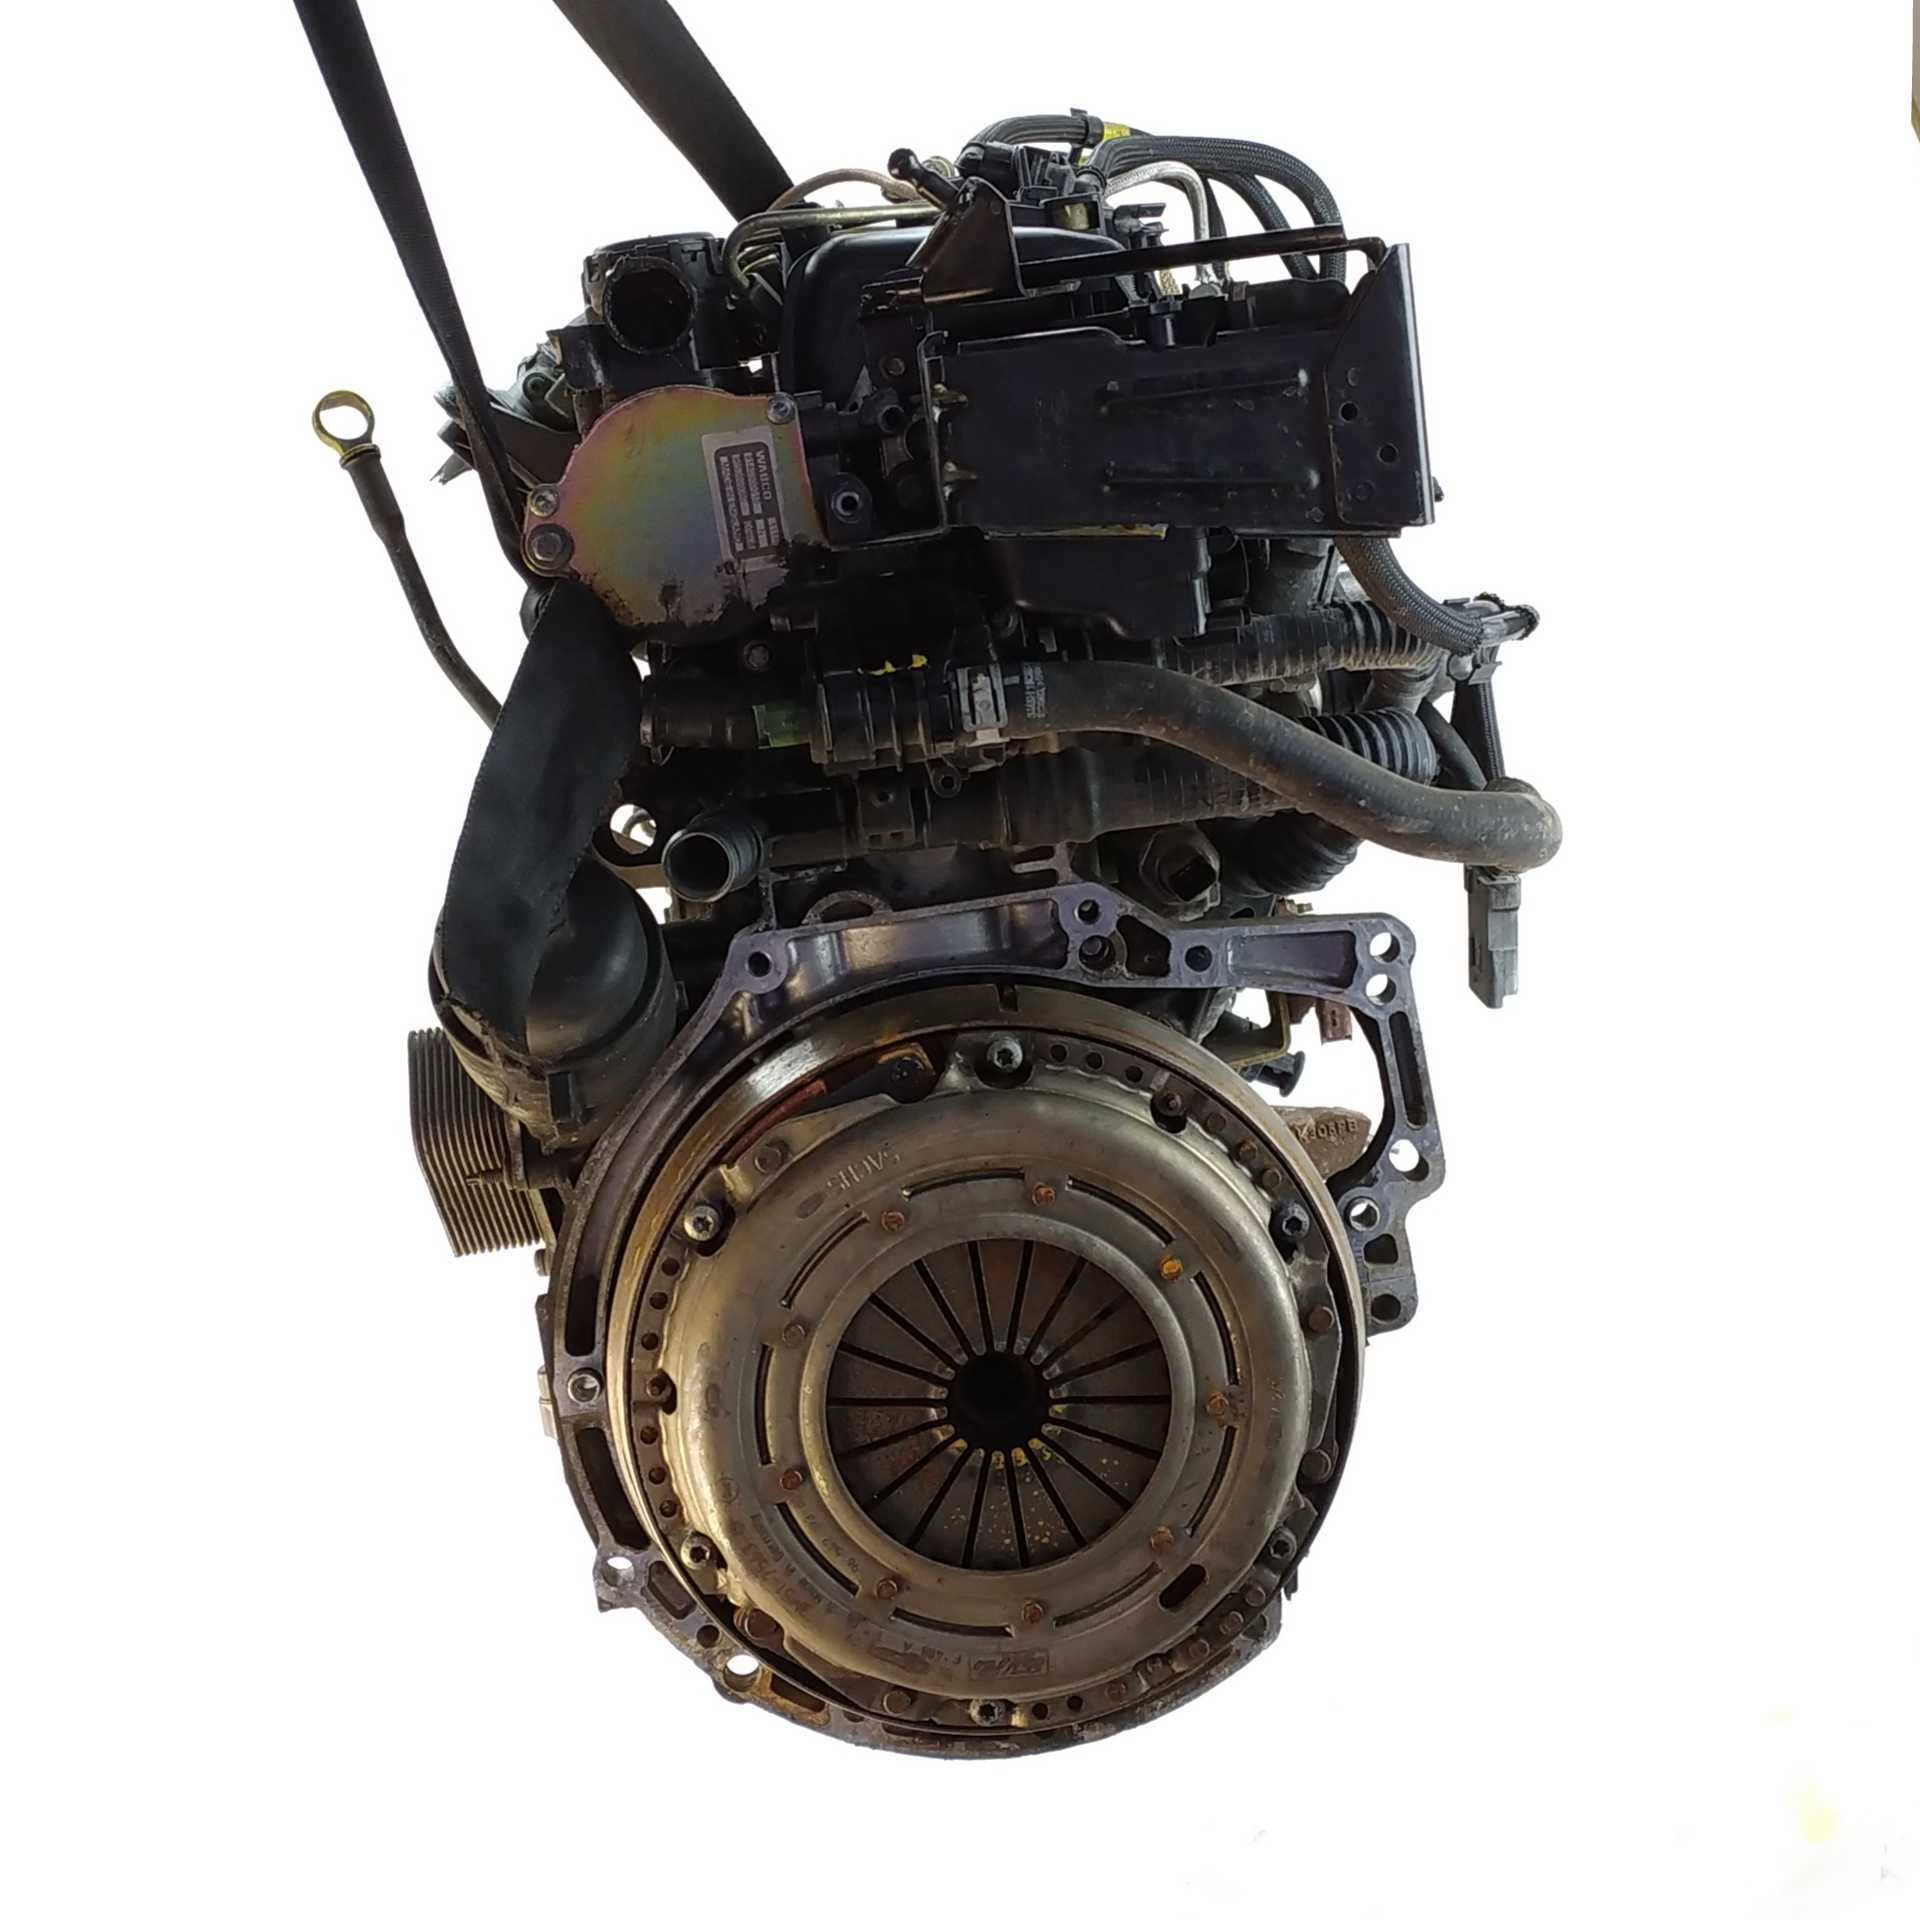 MOTOR COMPLETO FORD FOCUS II Turnier 1.6 TDCi (66 KW / 90 CV) (07.2004 - 09.2012)